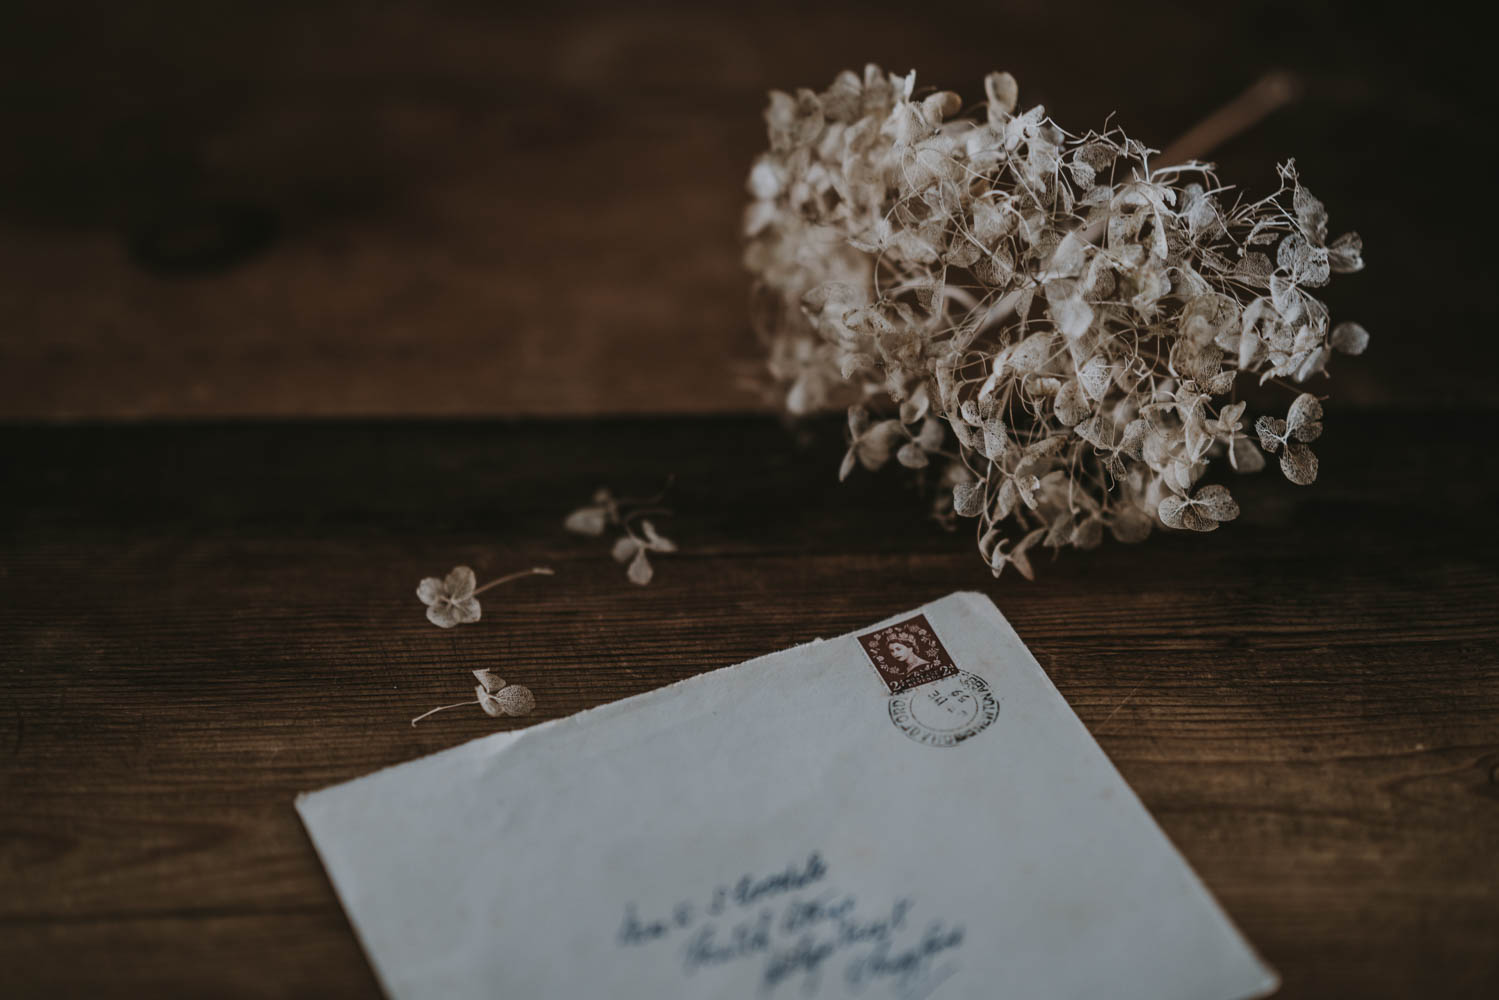 Letter Writing on Hygge House. Photo by Annie Spratt